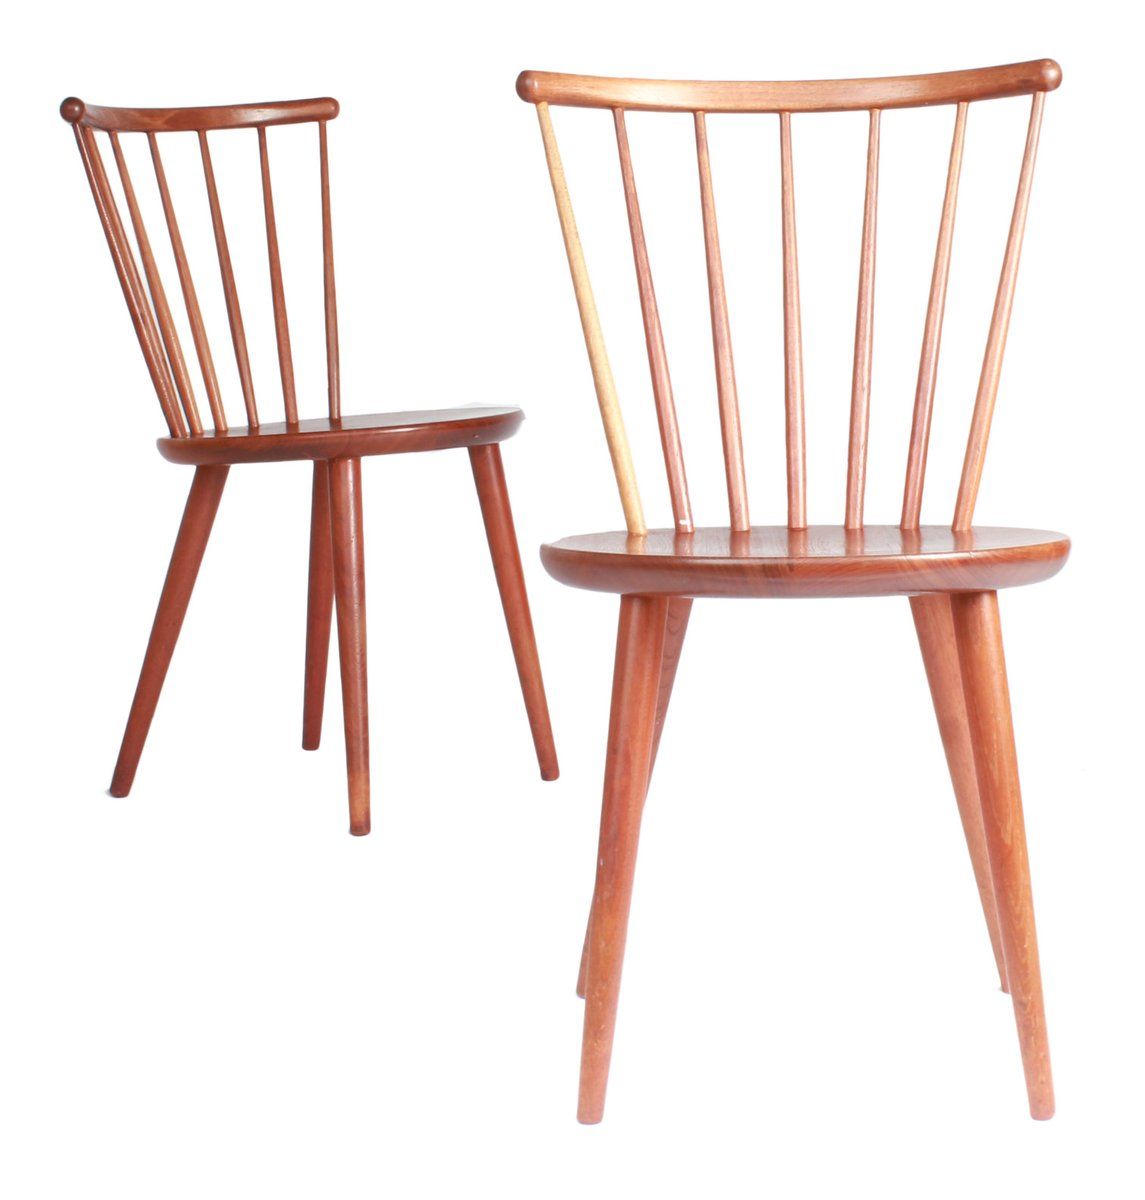 Vintage scandinavian chair for sale at pamono - Scandinavian chair ...